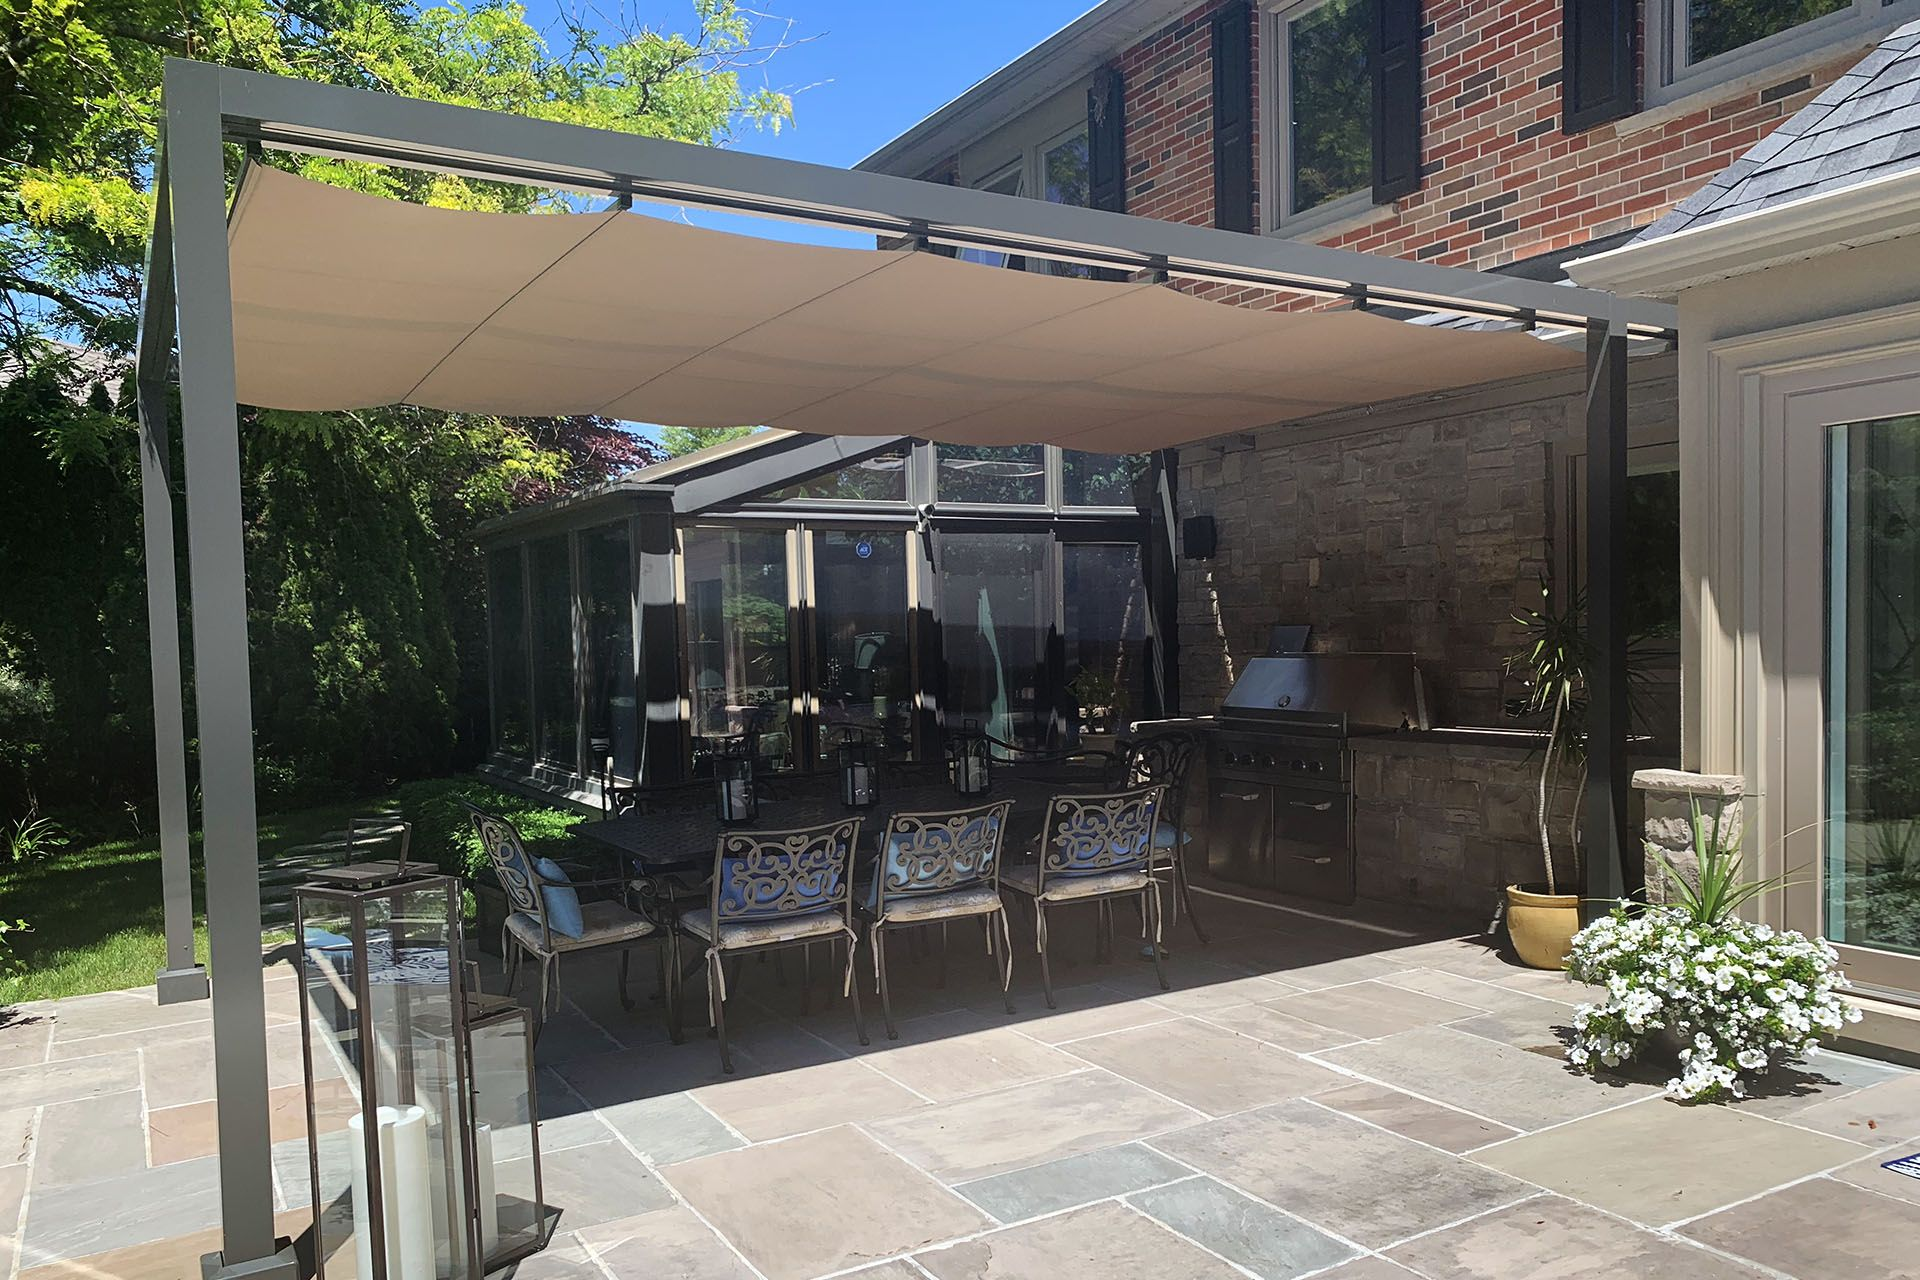 Pin On Retractable Canopies